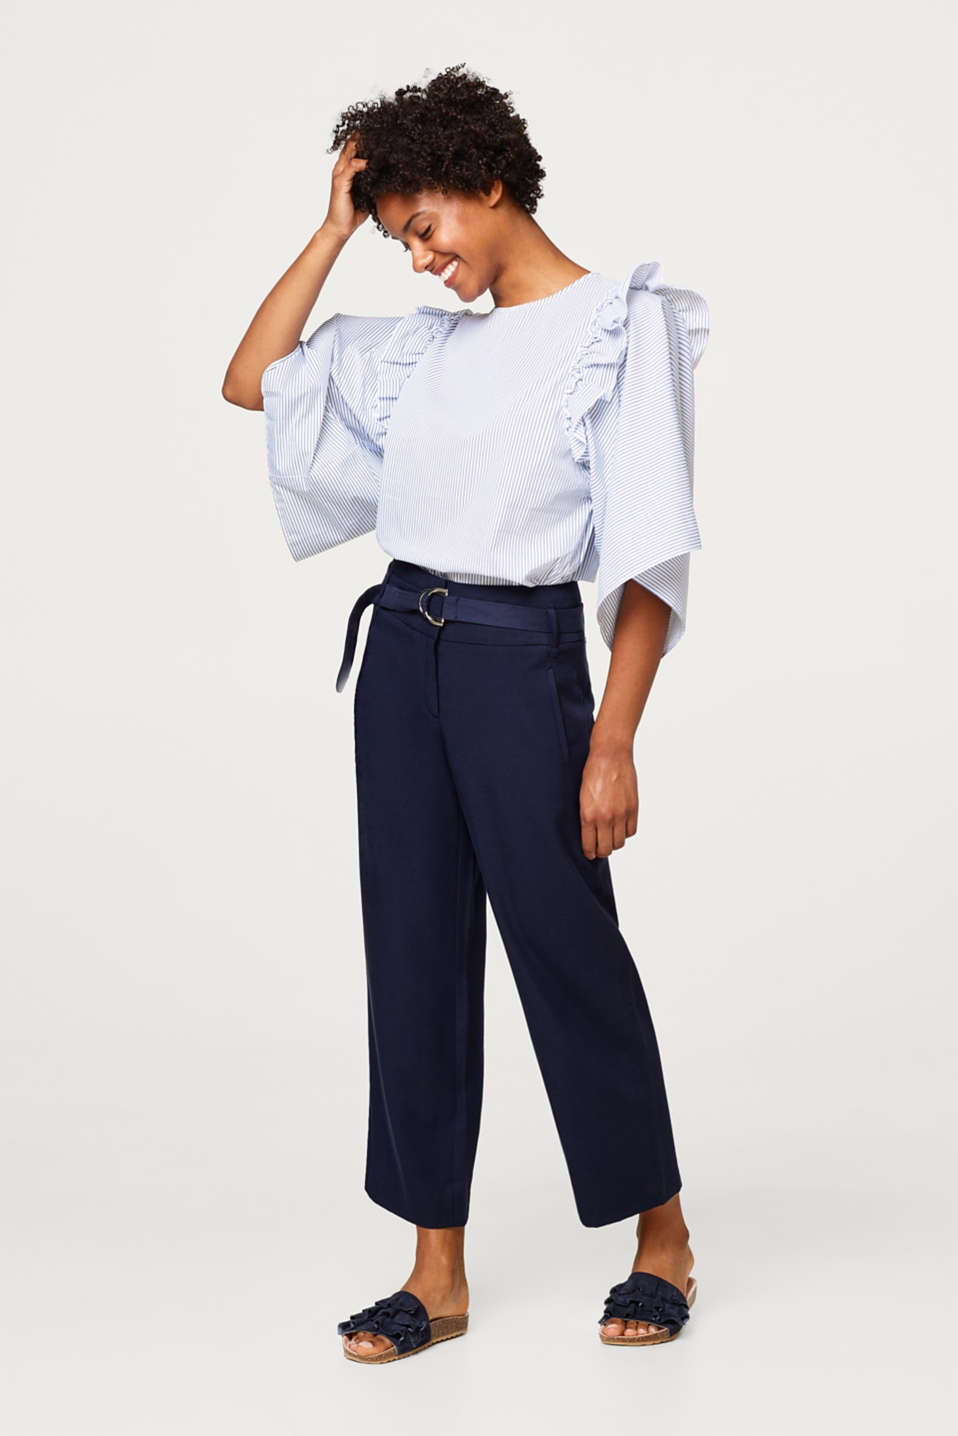 Stretchy blouse with extra wide sleeves